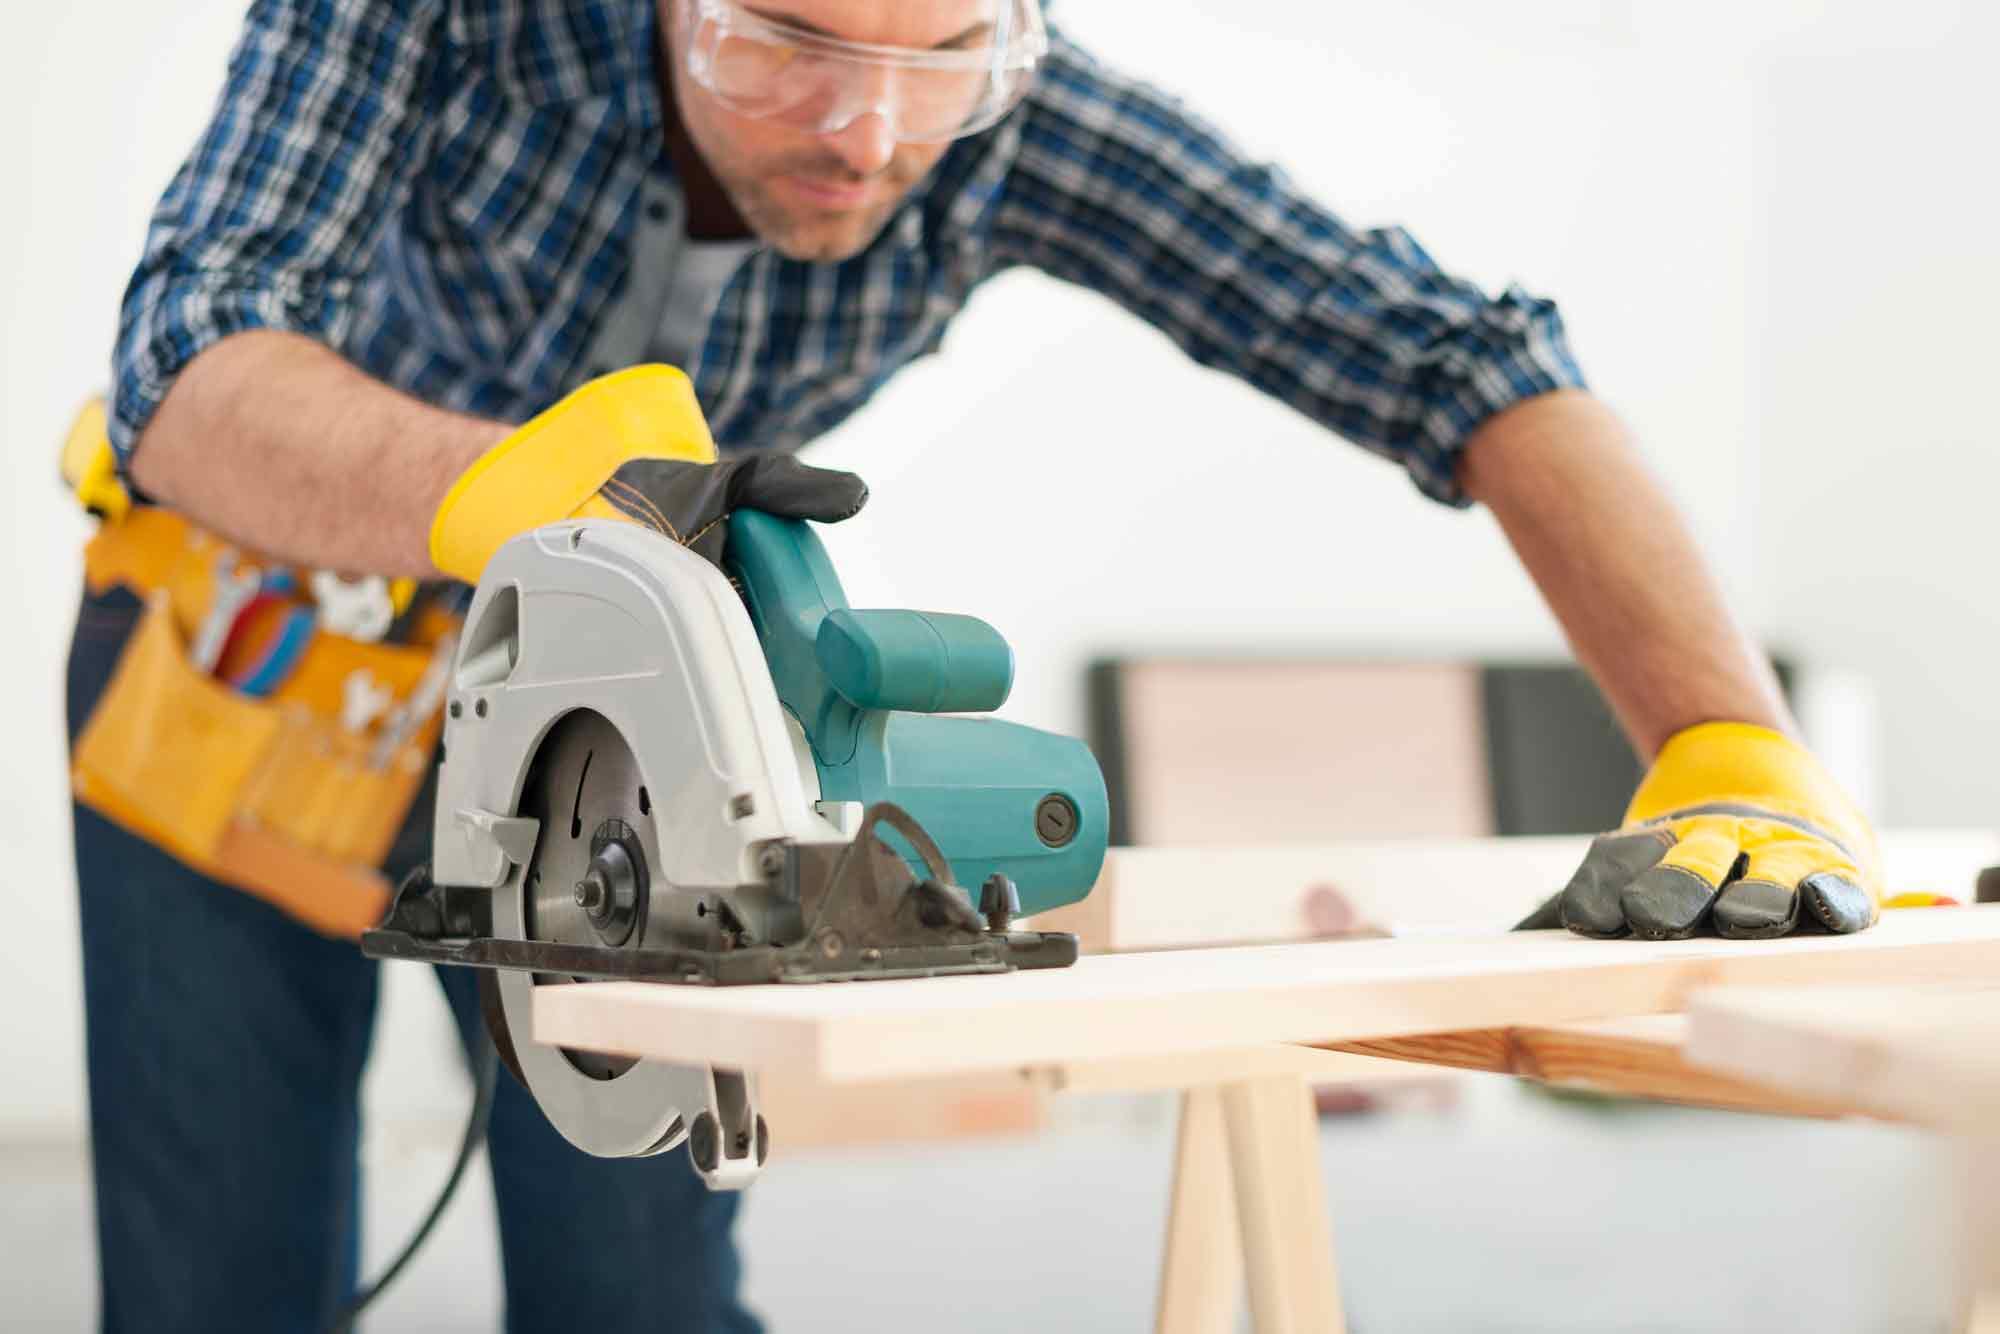 man woodworking with circular saws